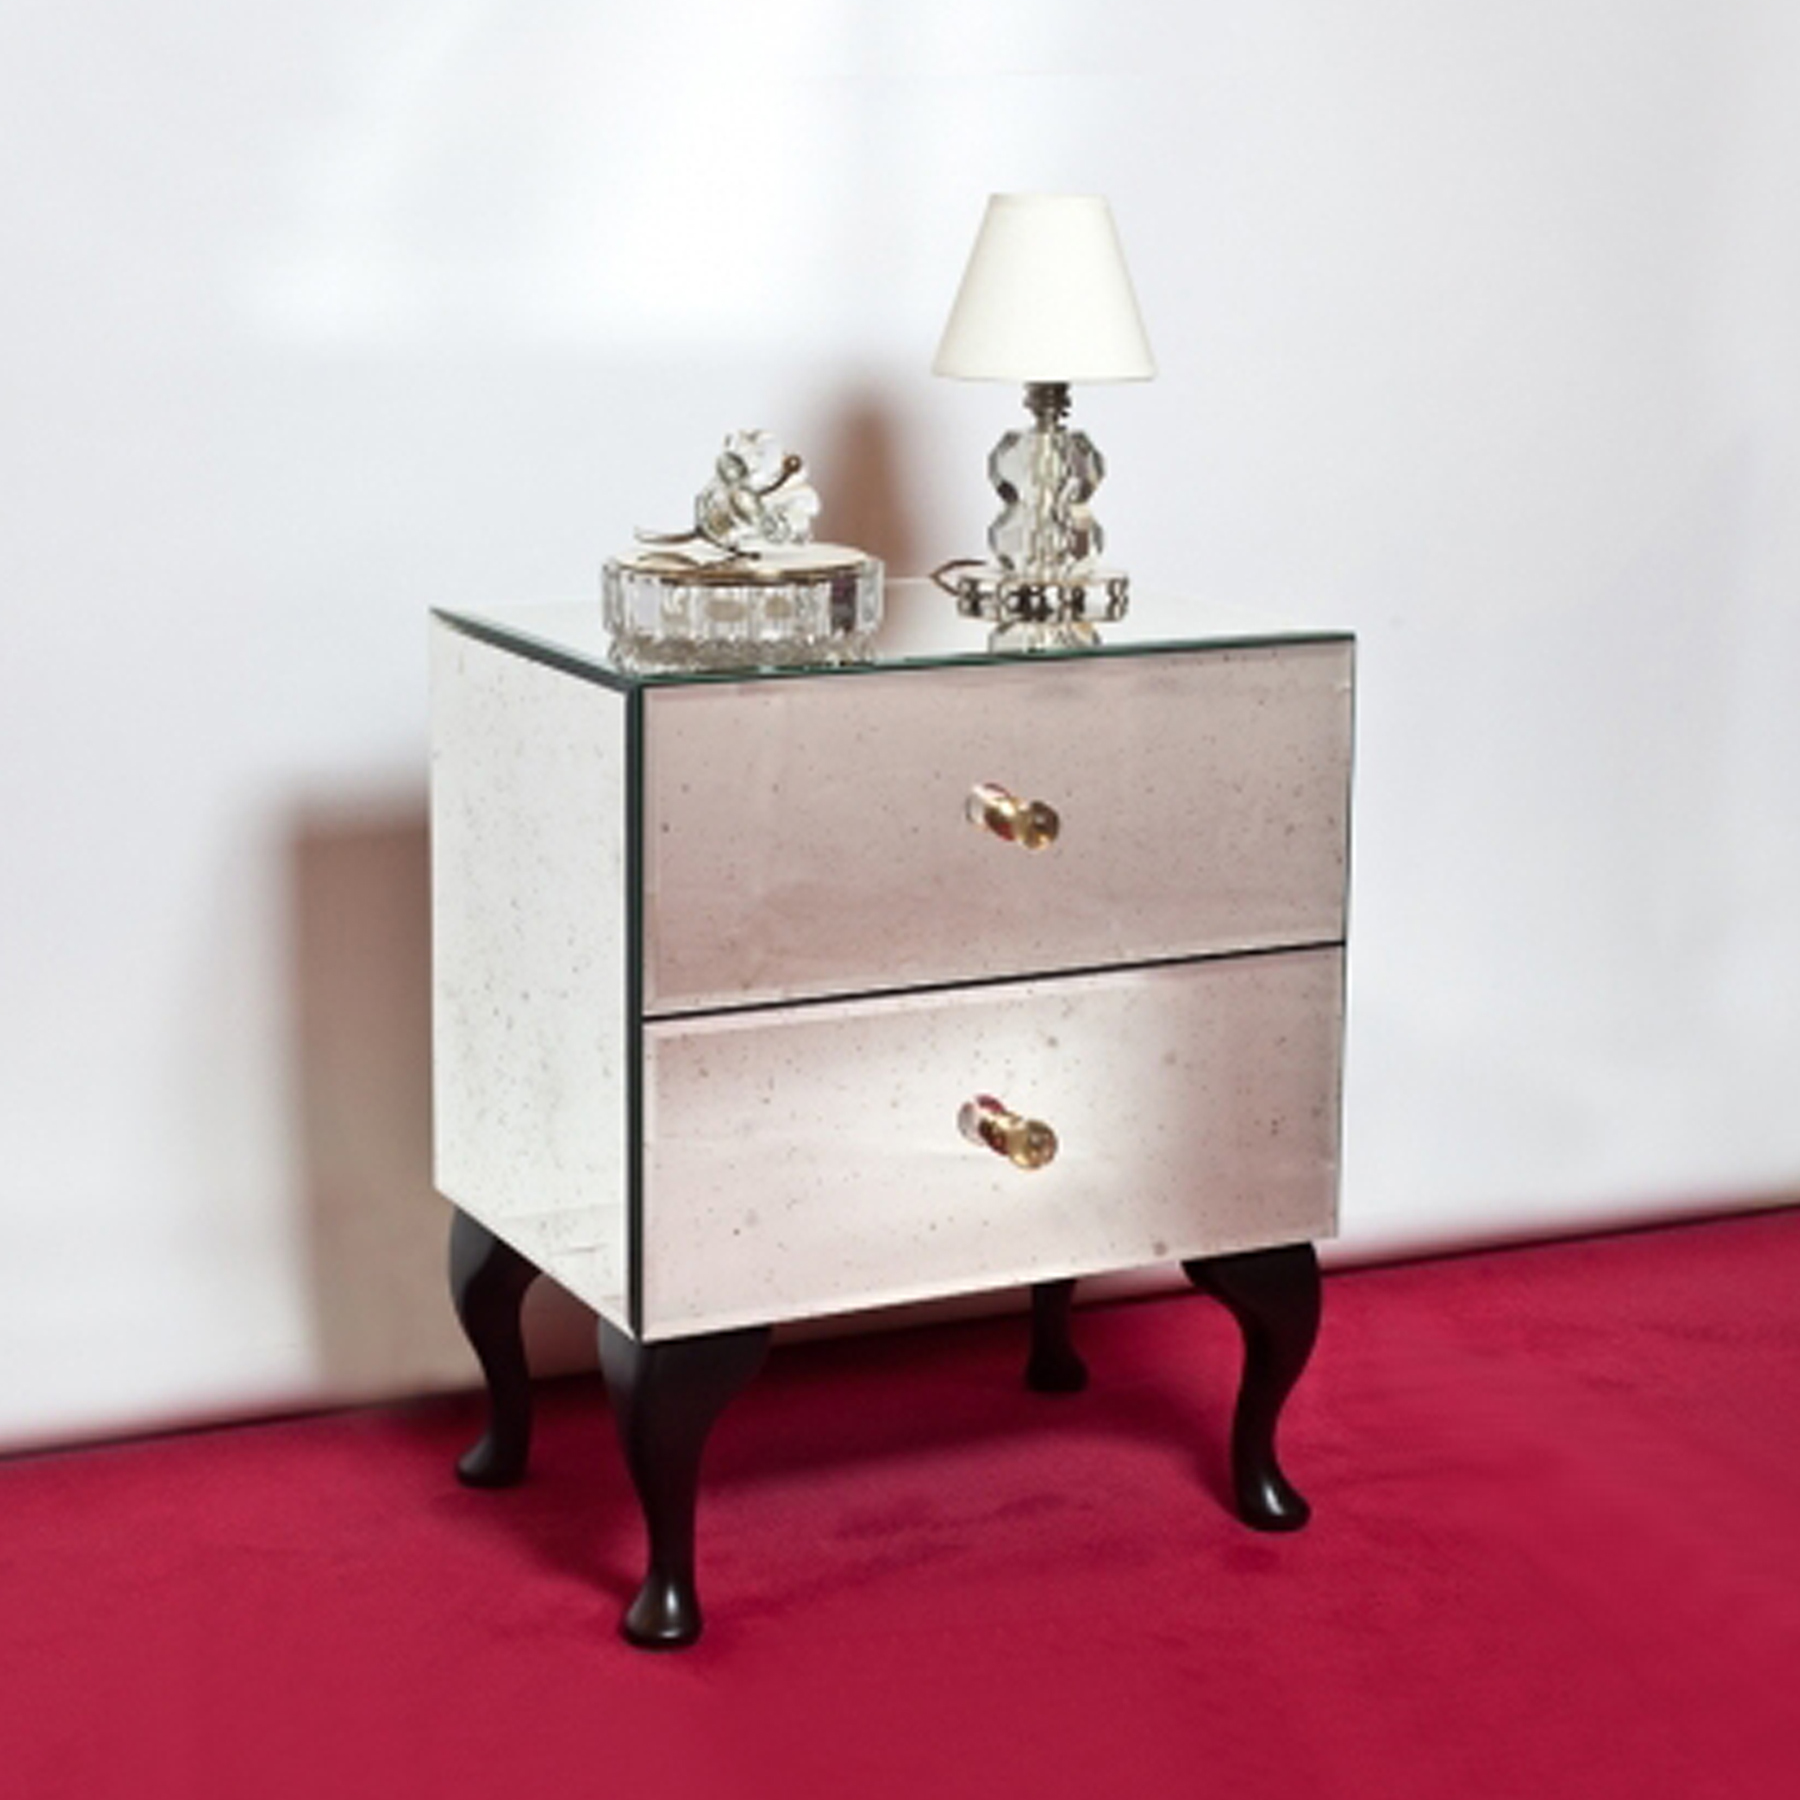 The image for Valerie Wade Fc030 Sophia Bedside Table 01